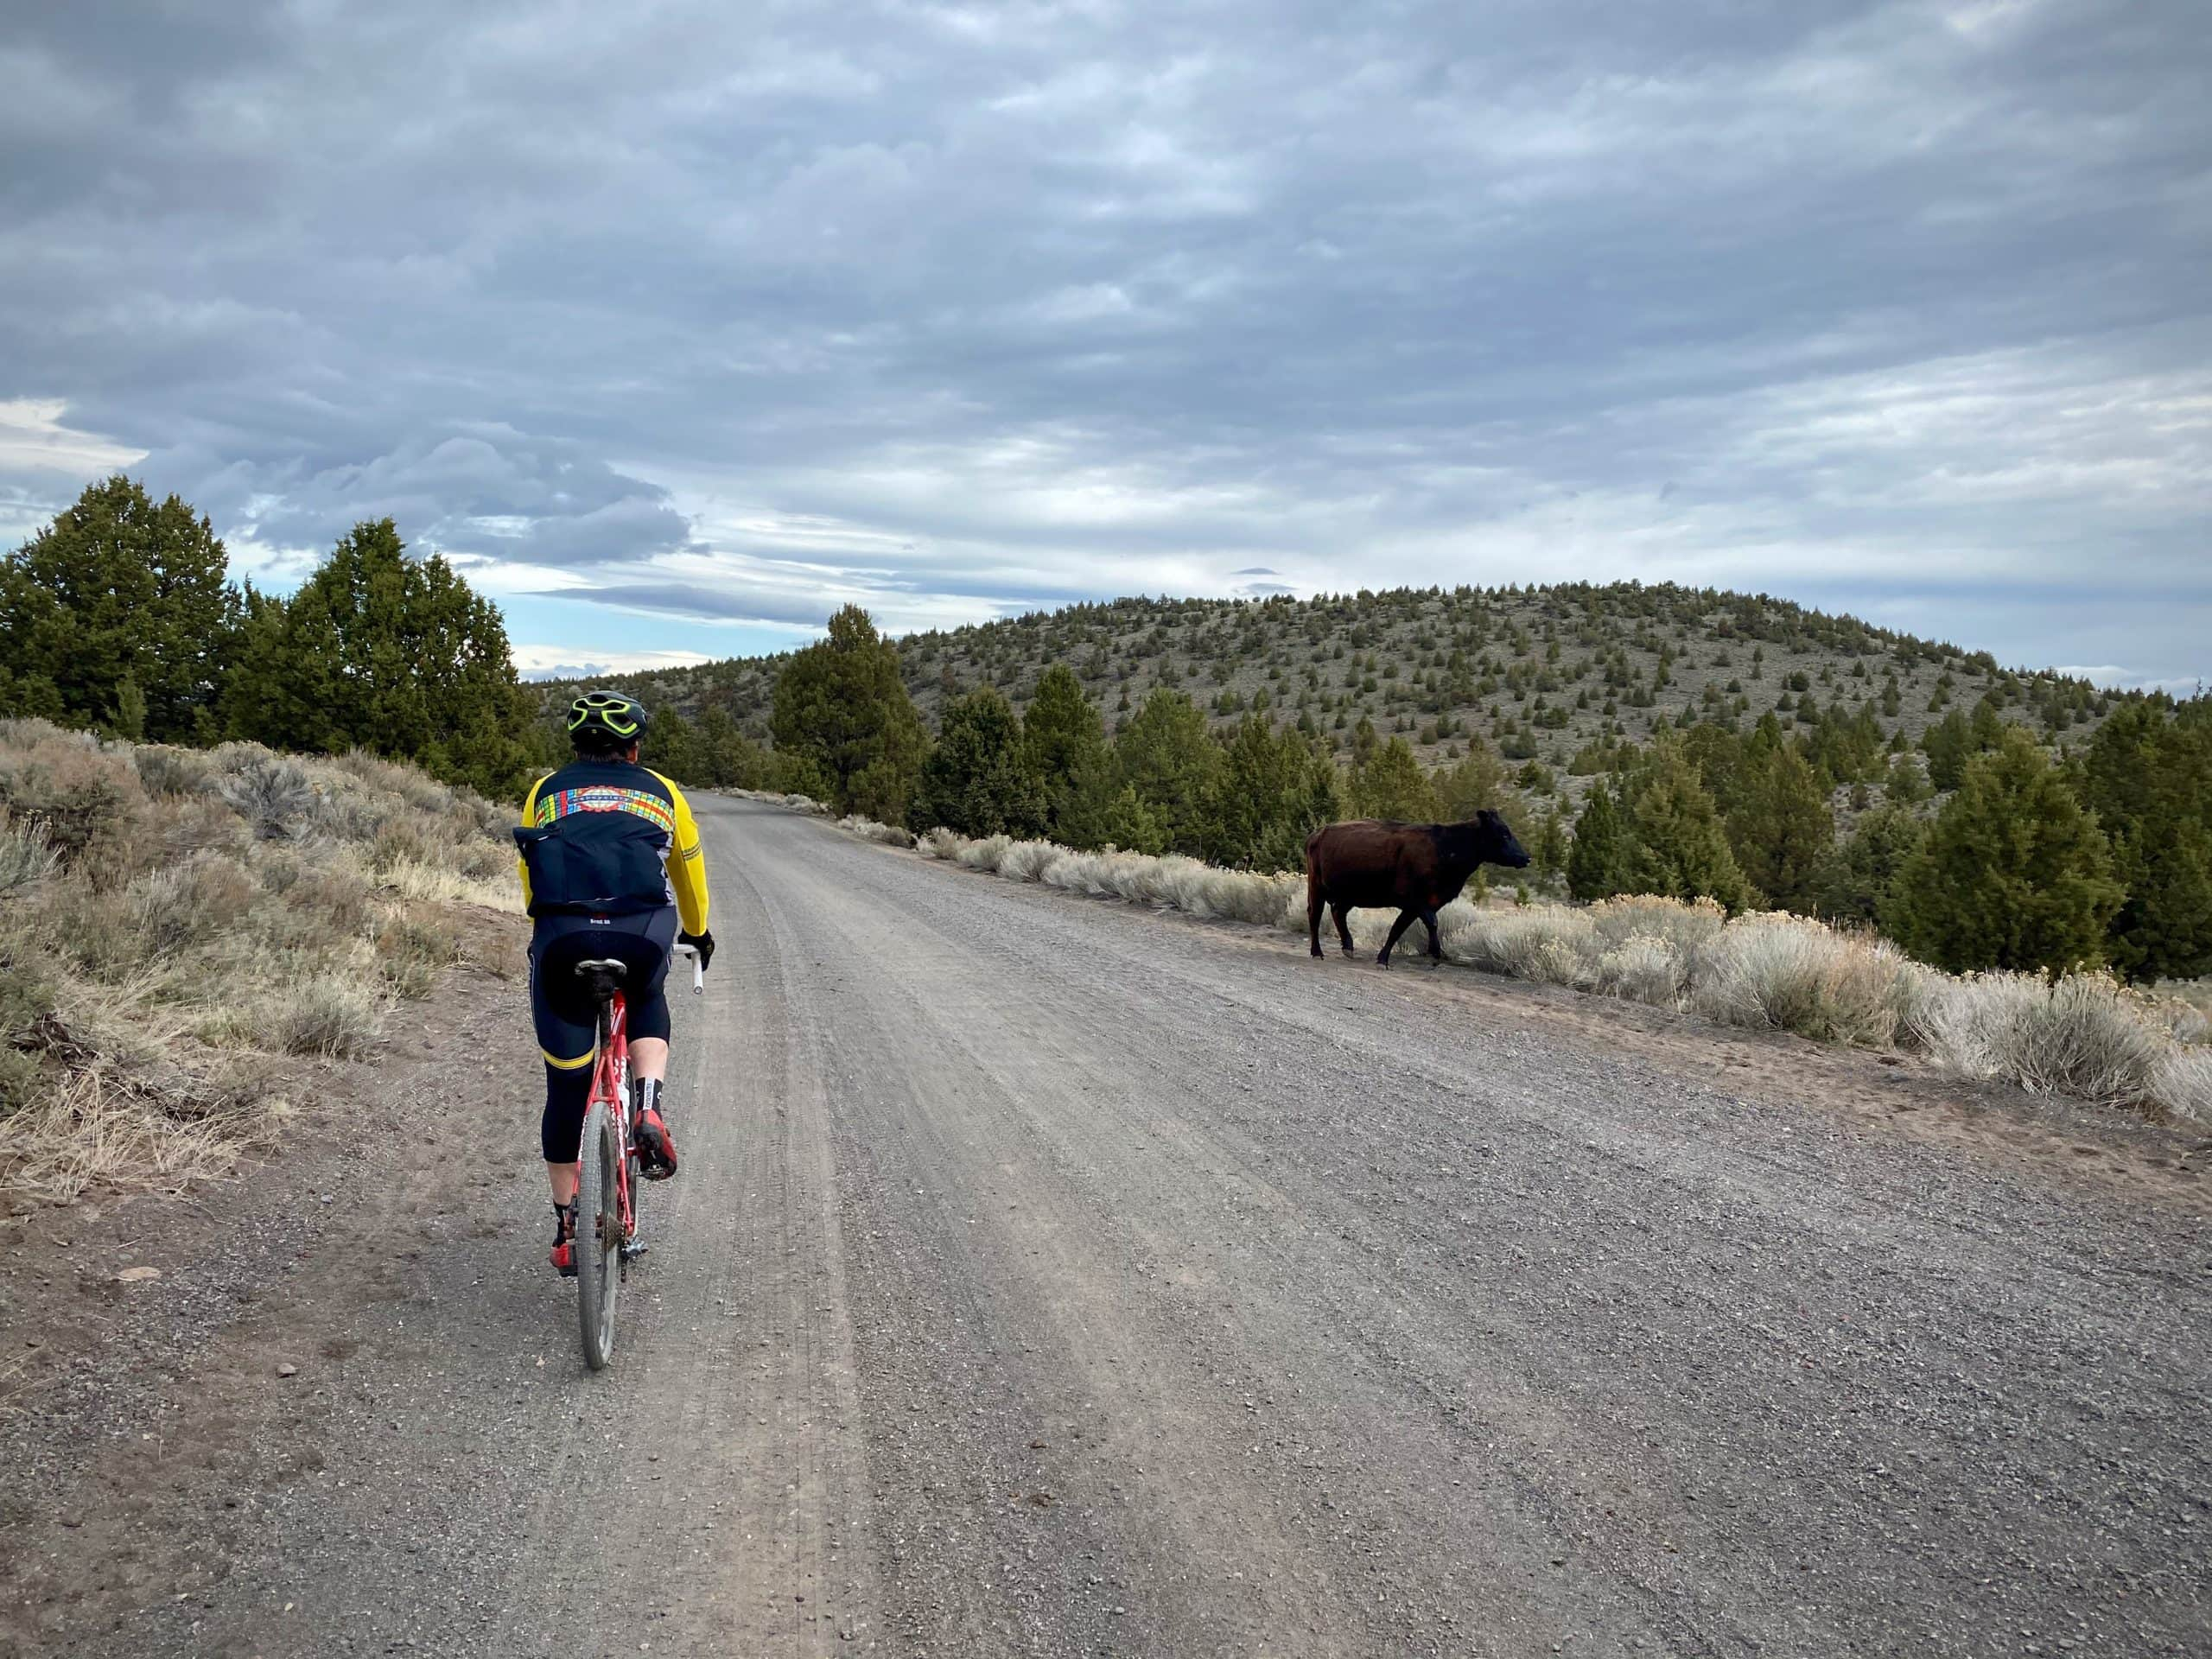 Cyclist passing by a free range cow near Pine Mountain and Millican valley.